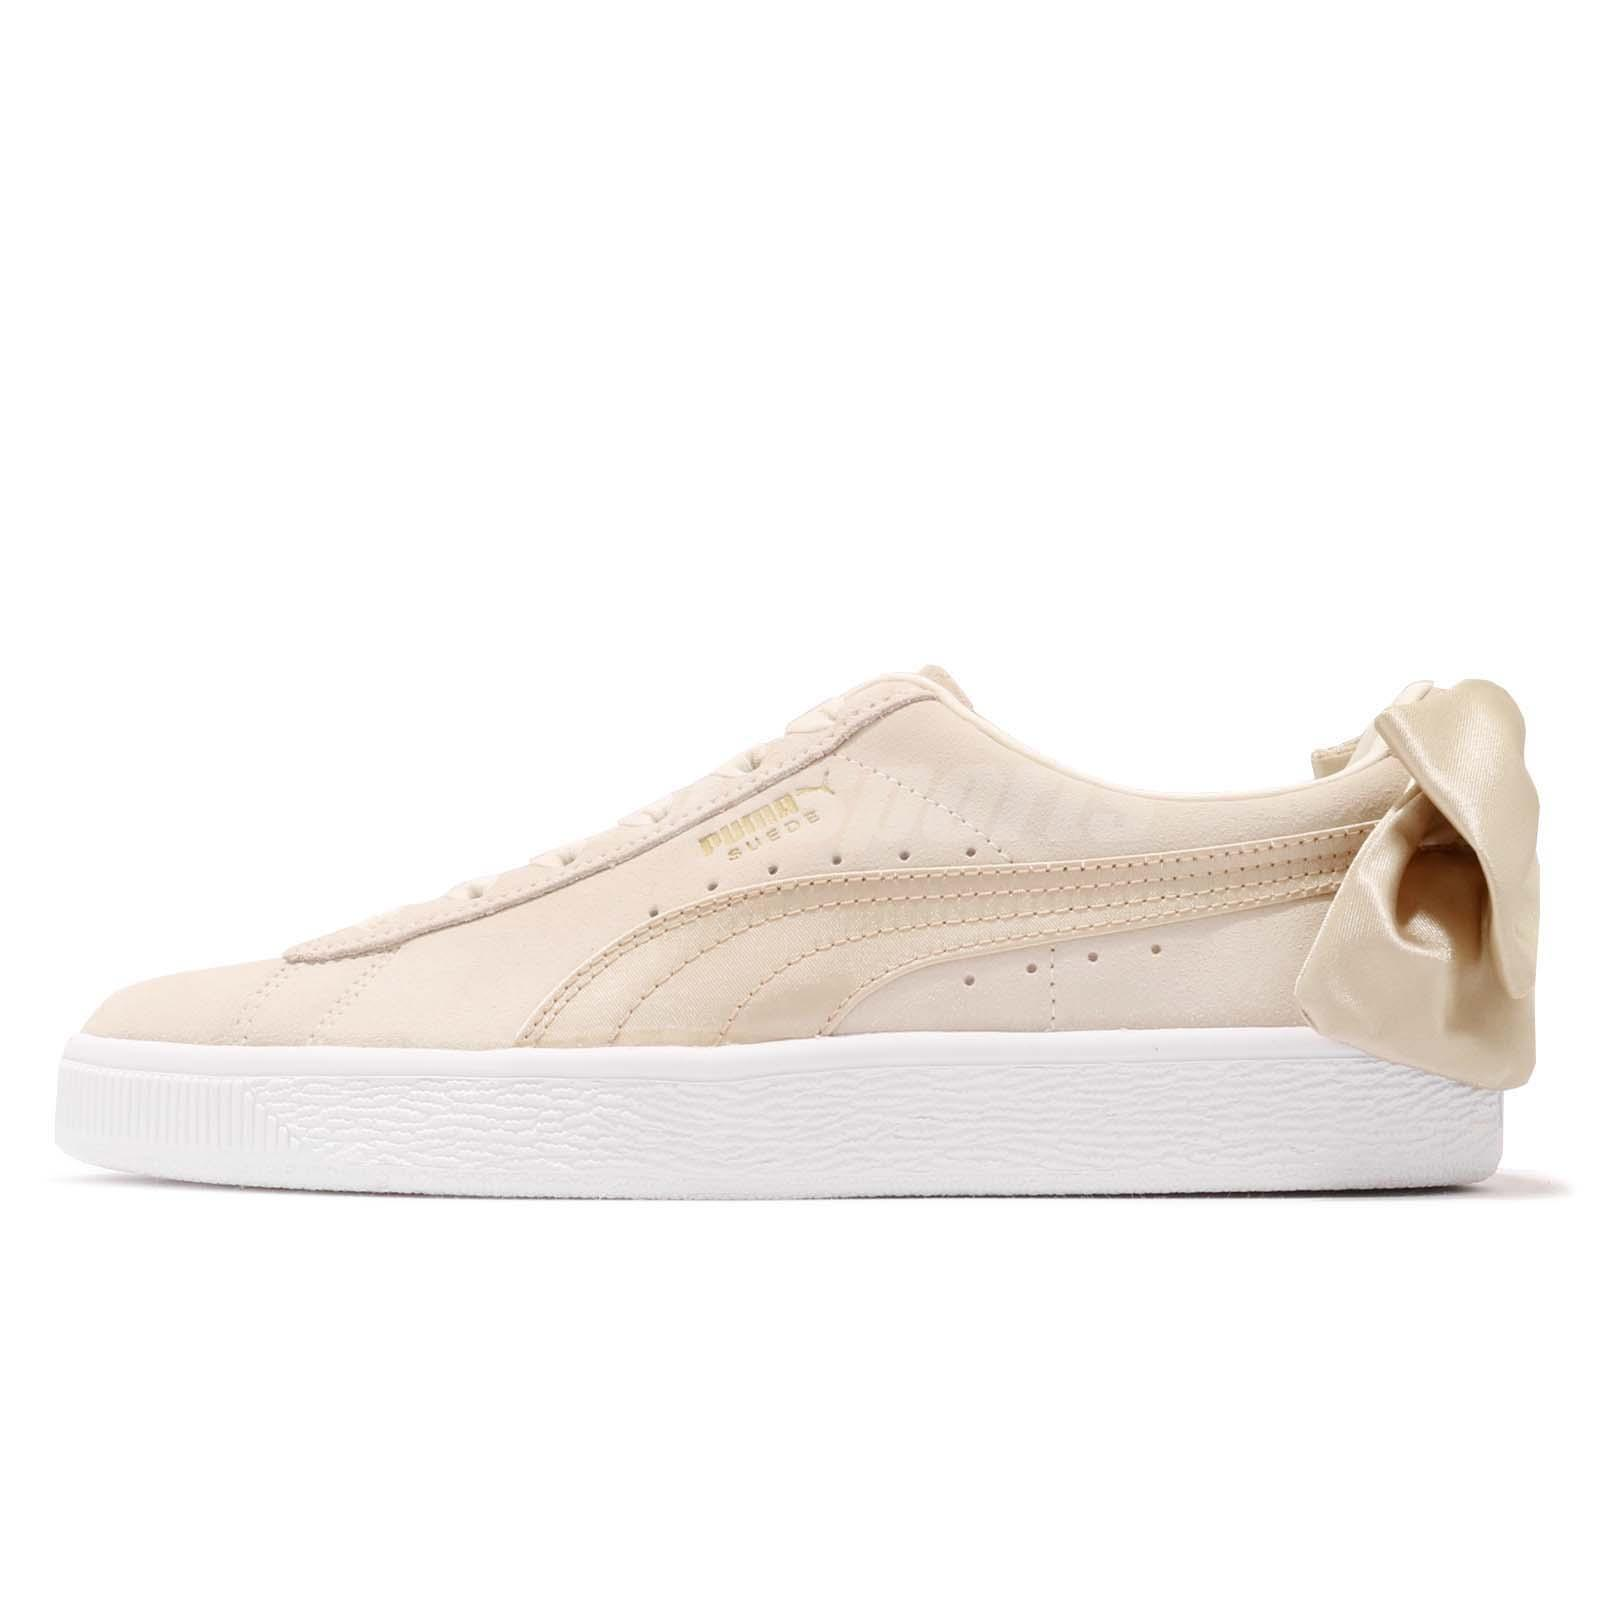 Details about Puma Suede Bow Varsity Wns Beige Gold Womens Casual Shoes  Sneakers 367732-03 3c00924b5